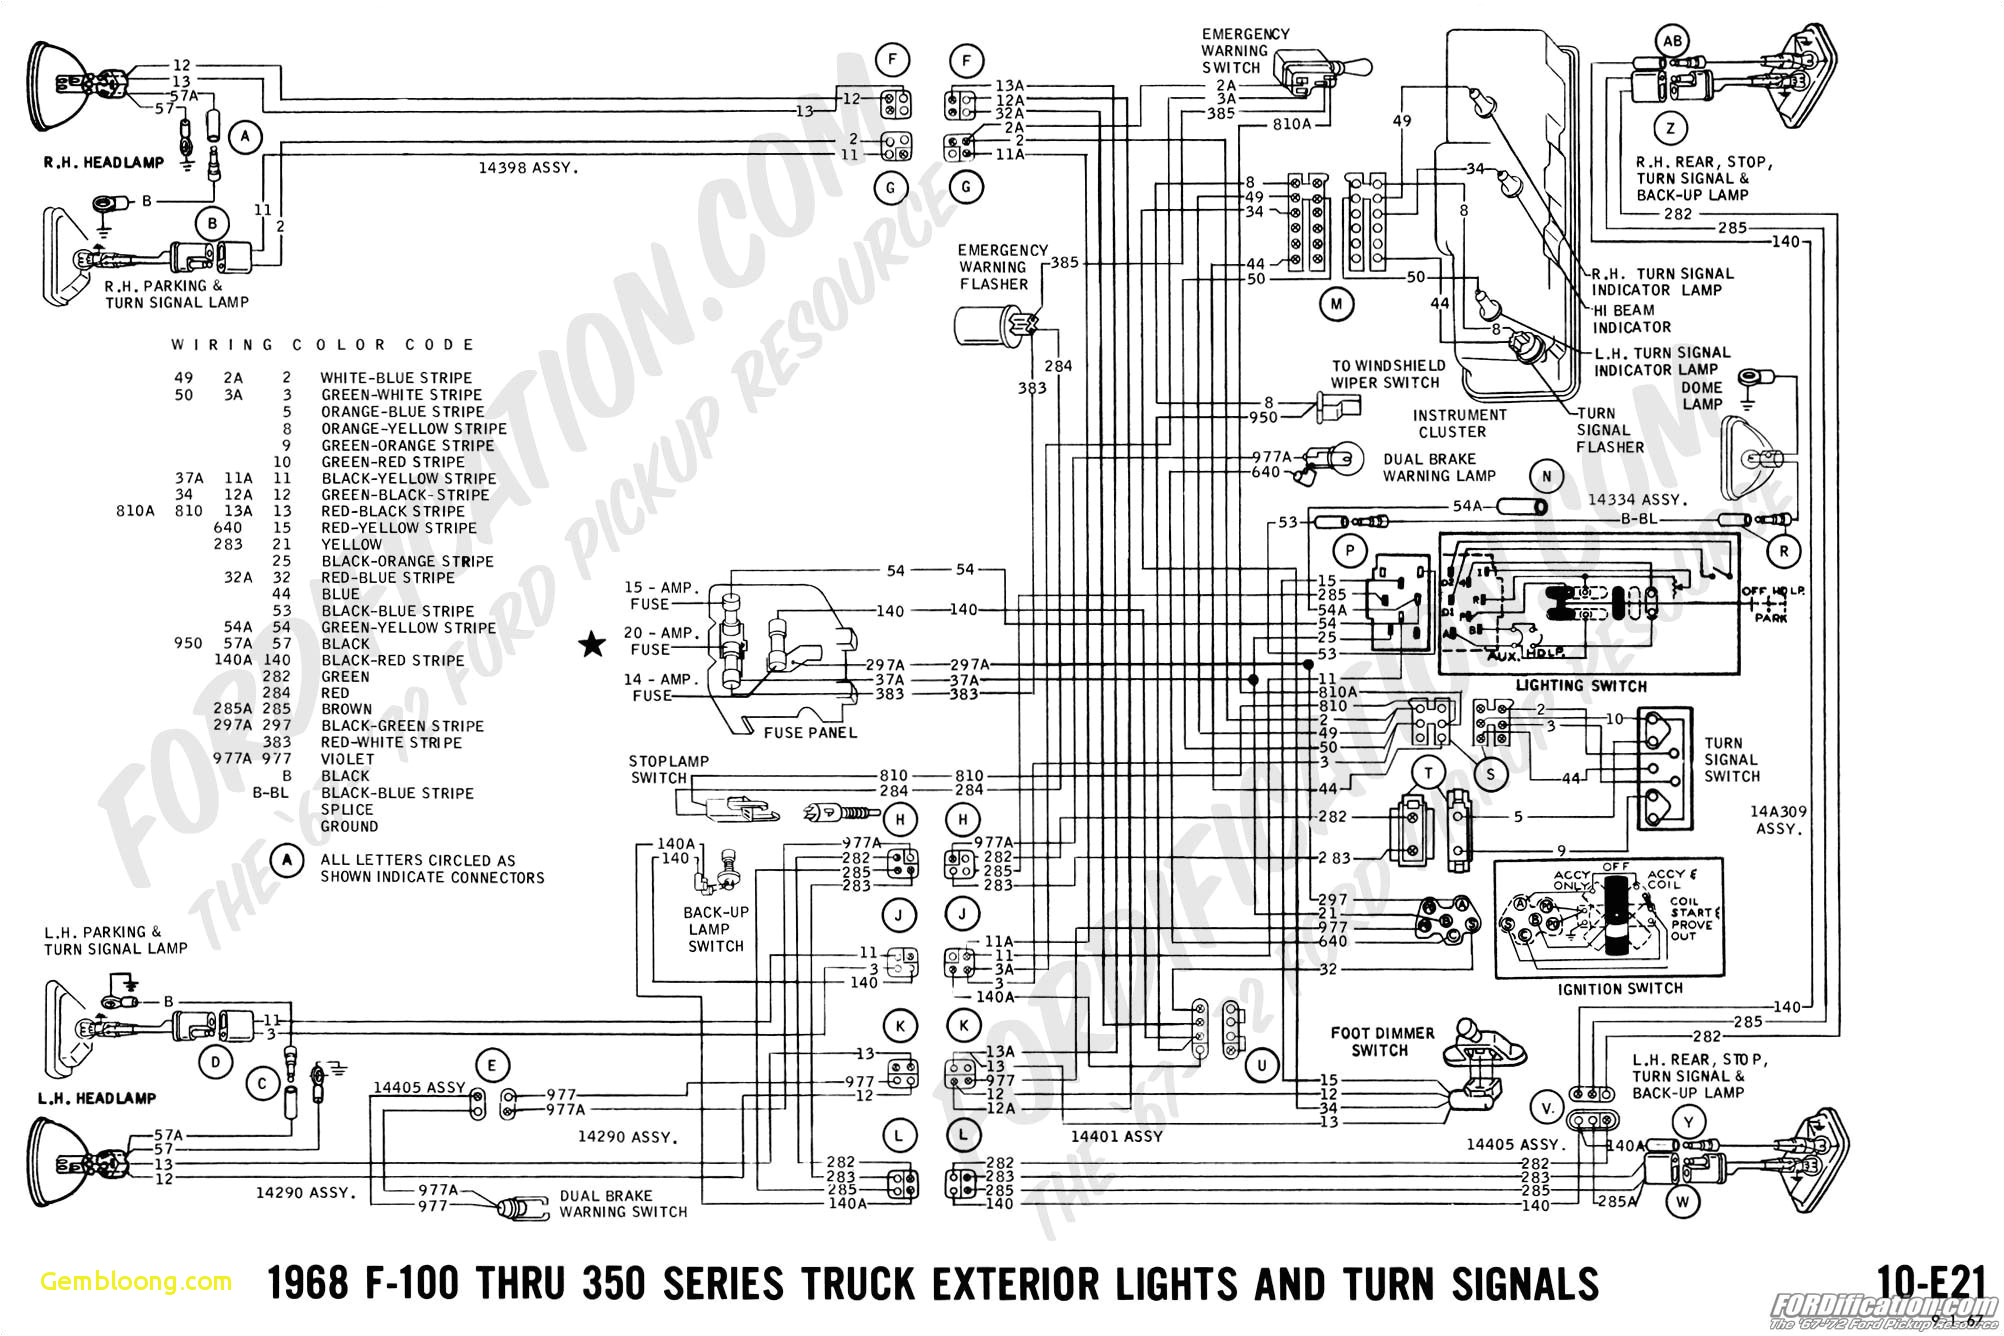 Ford Wiring Diagram 10 ford Trucks Wiring Diagrams Free Wiring Diagram